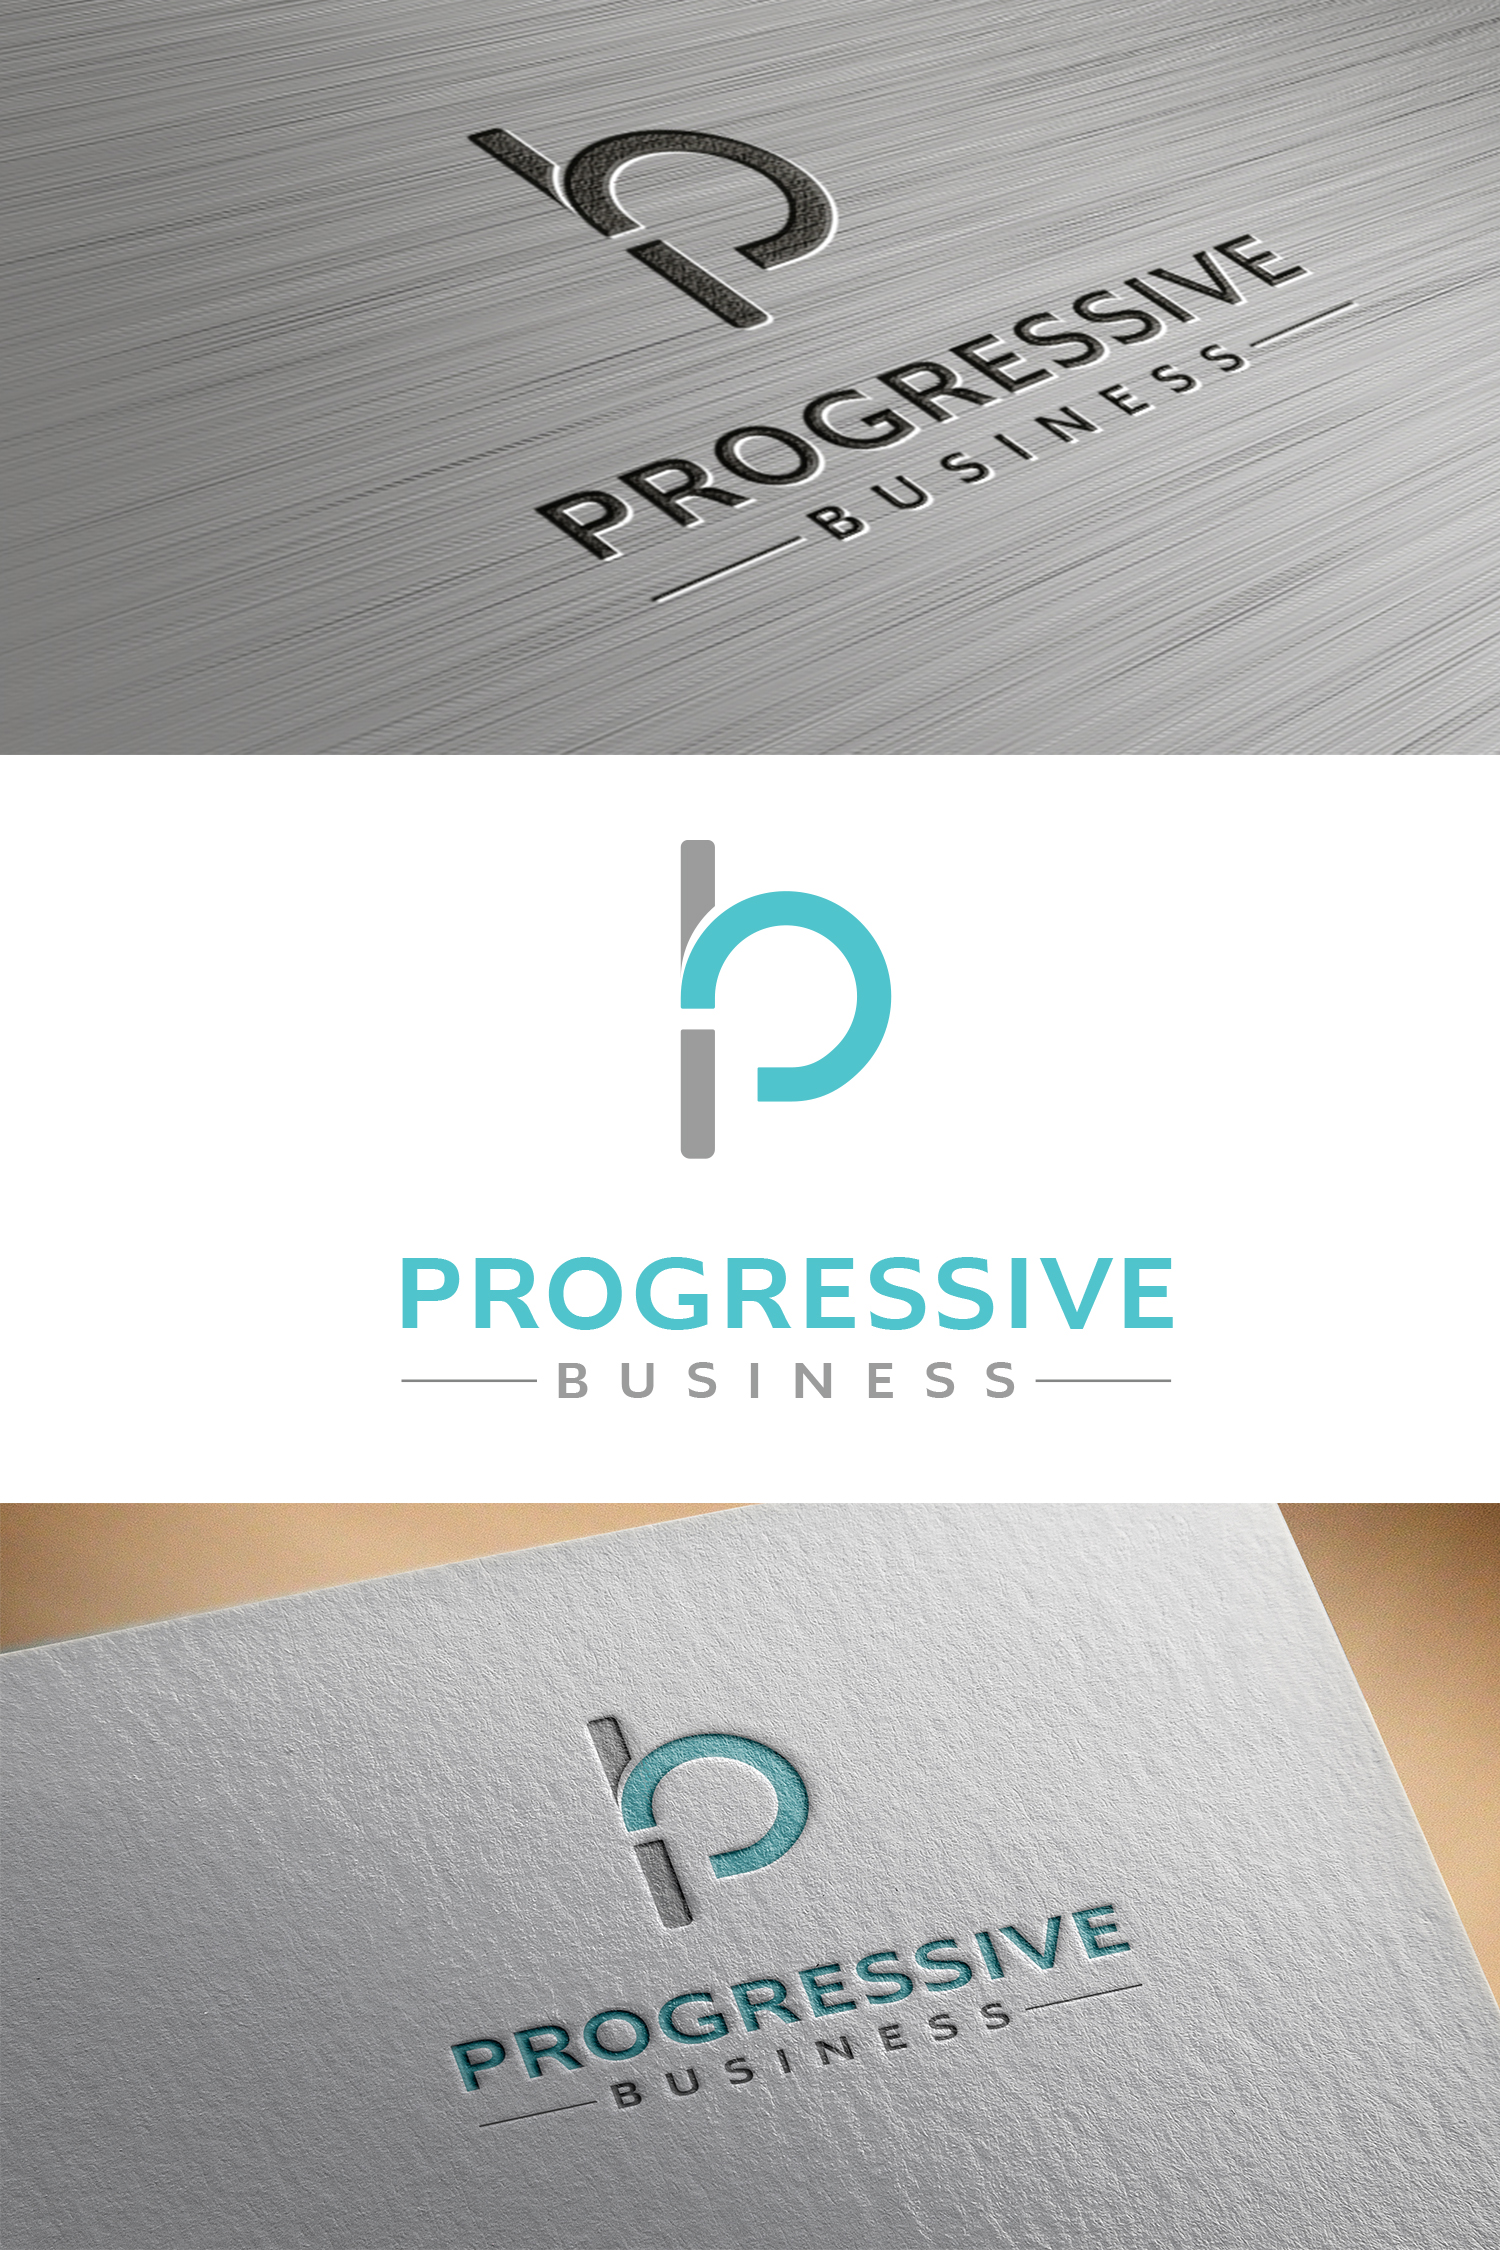 Logo Design by Umair ahmed Iqbal - Entry No. 80 in the Logo Design Contest Captivating Logo Design for Progressive Business.